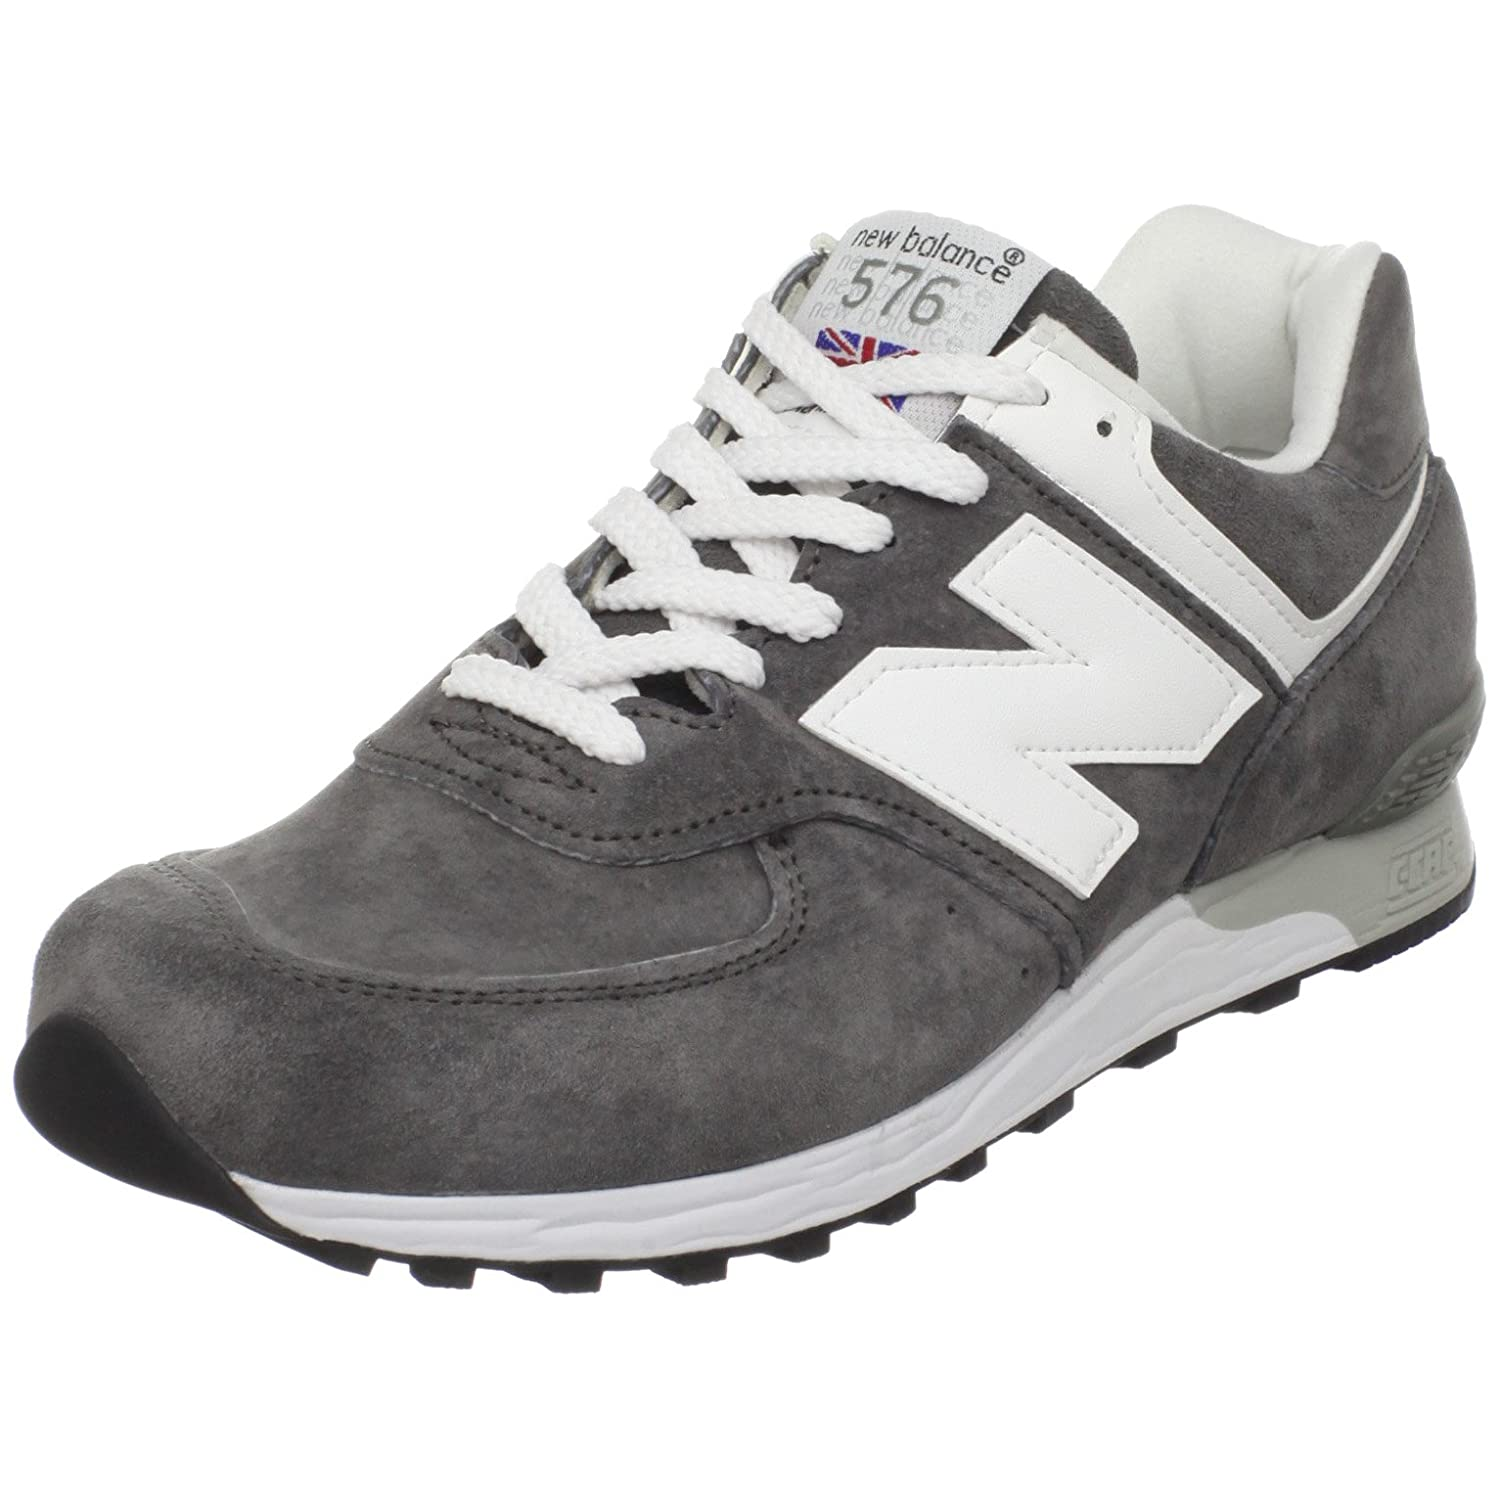 separation shoes 248c3 ad187 New Balance - Sneakers - Men - M576 Made in UK Grey Suede ...